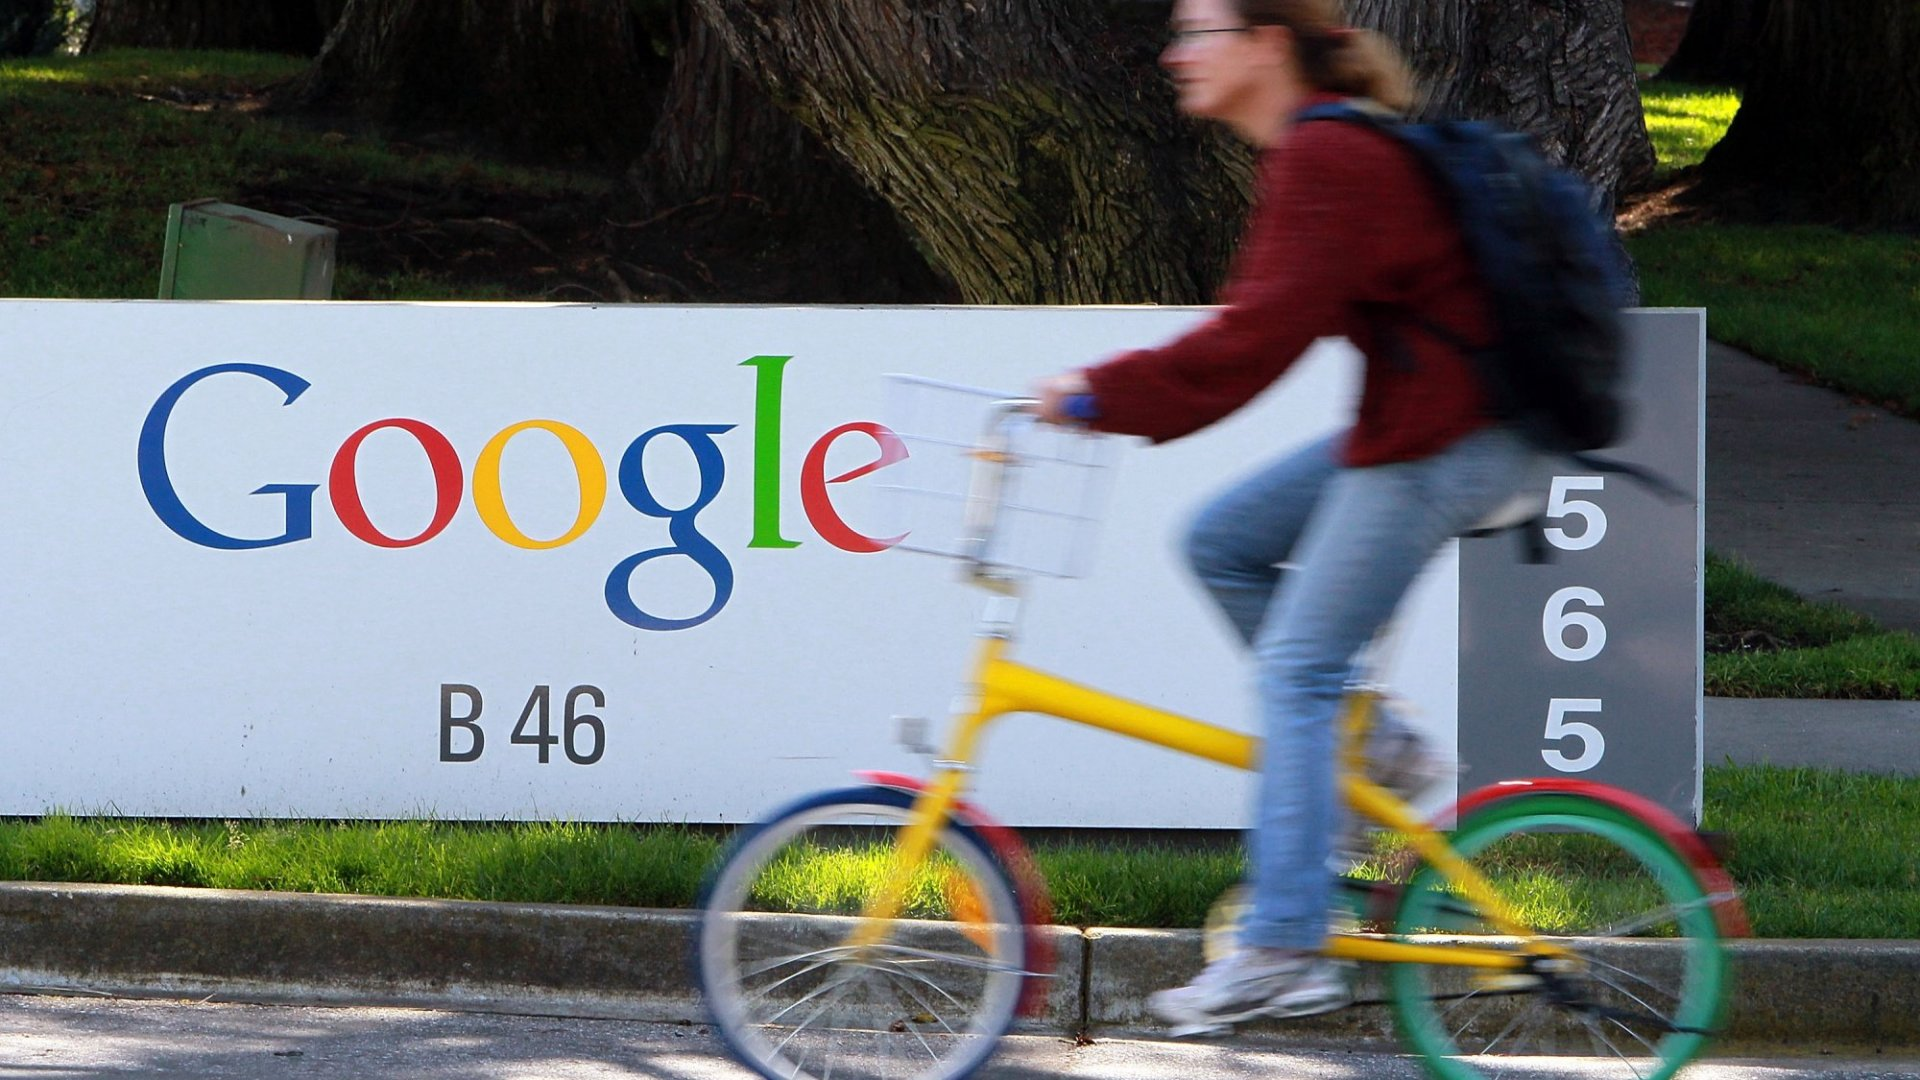 6 Reasons Working at Google Isn't Right for Most People